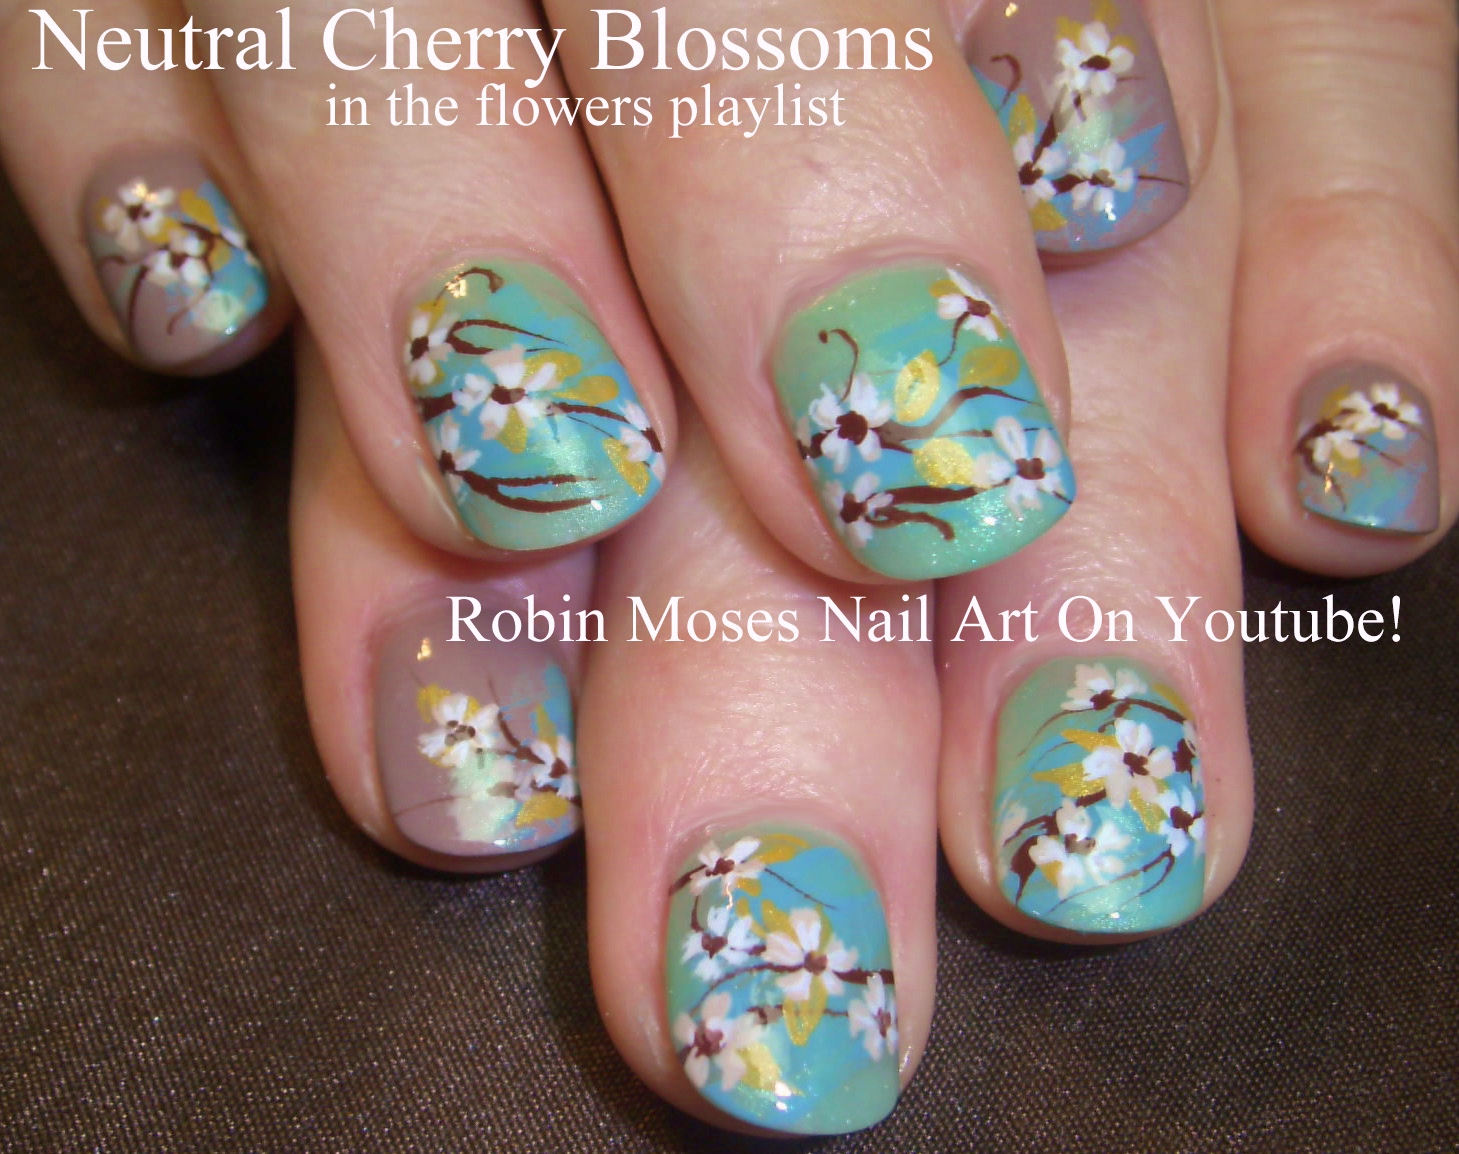 Robin moses nail art cherry blossom nail art 2016 full length easy cherry blossom nails watercolor ombre nail art design tutorial prinsesfo Gallery